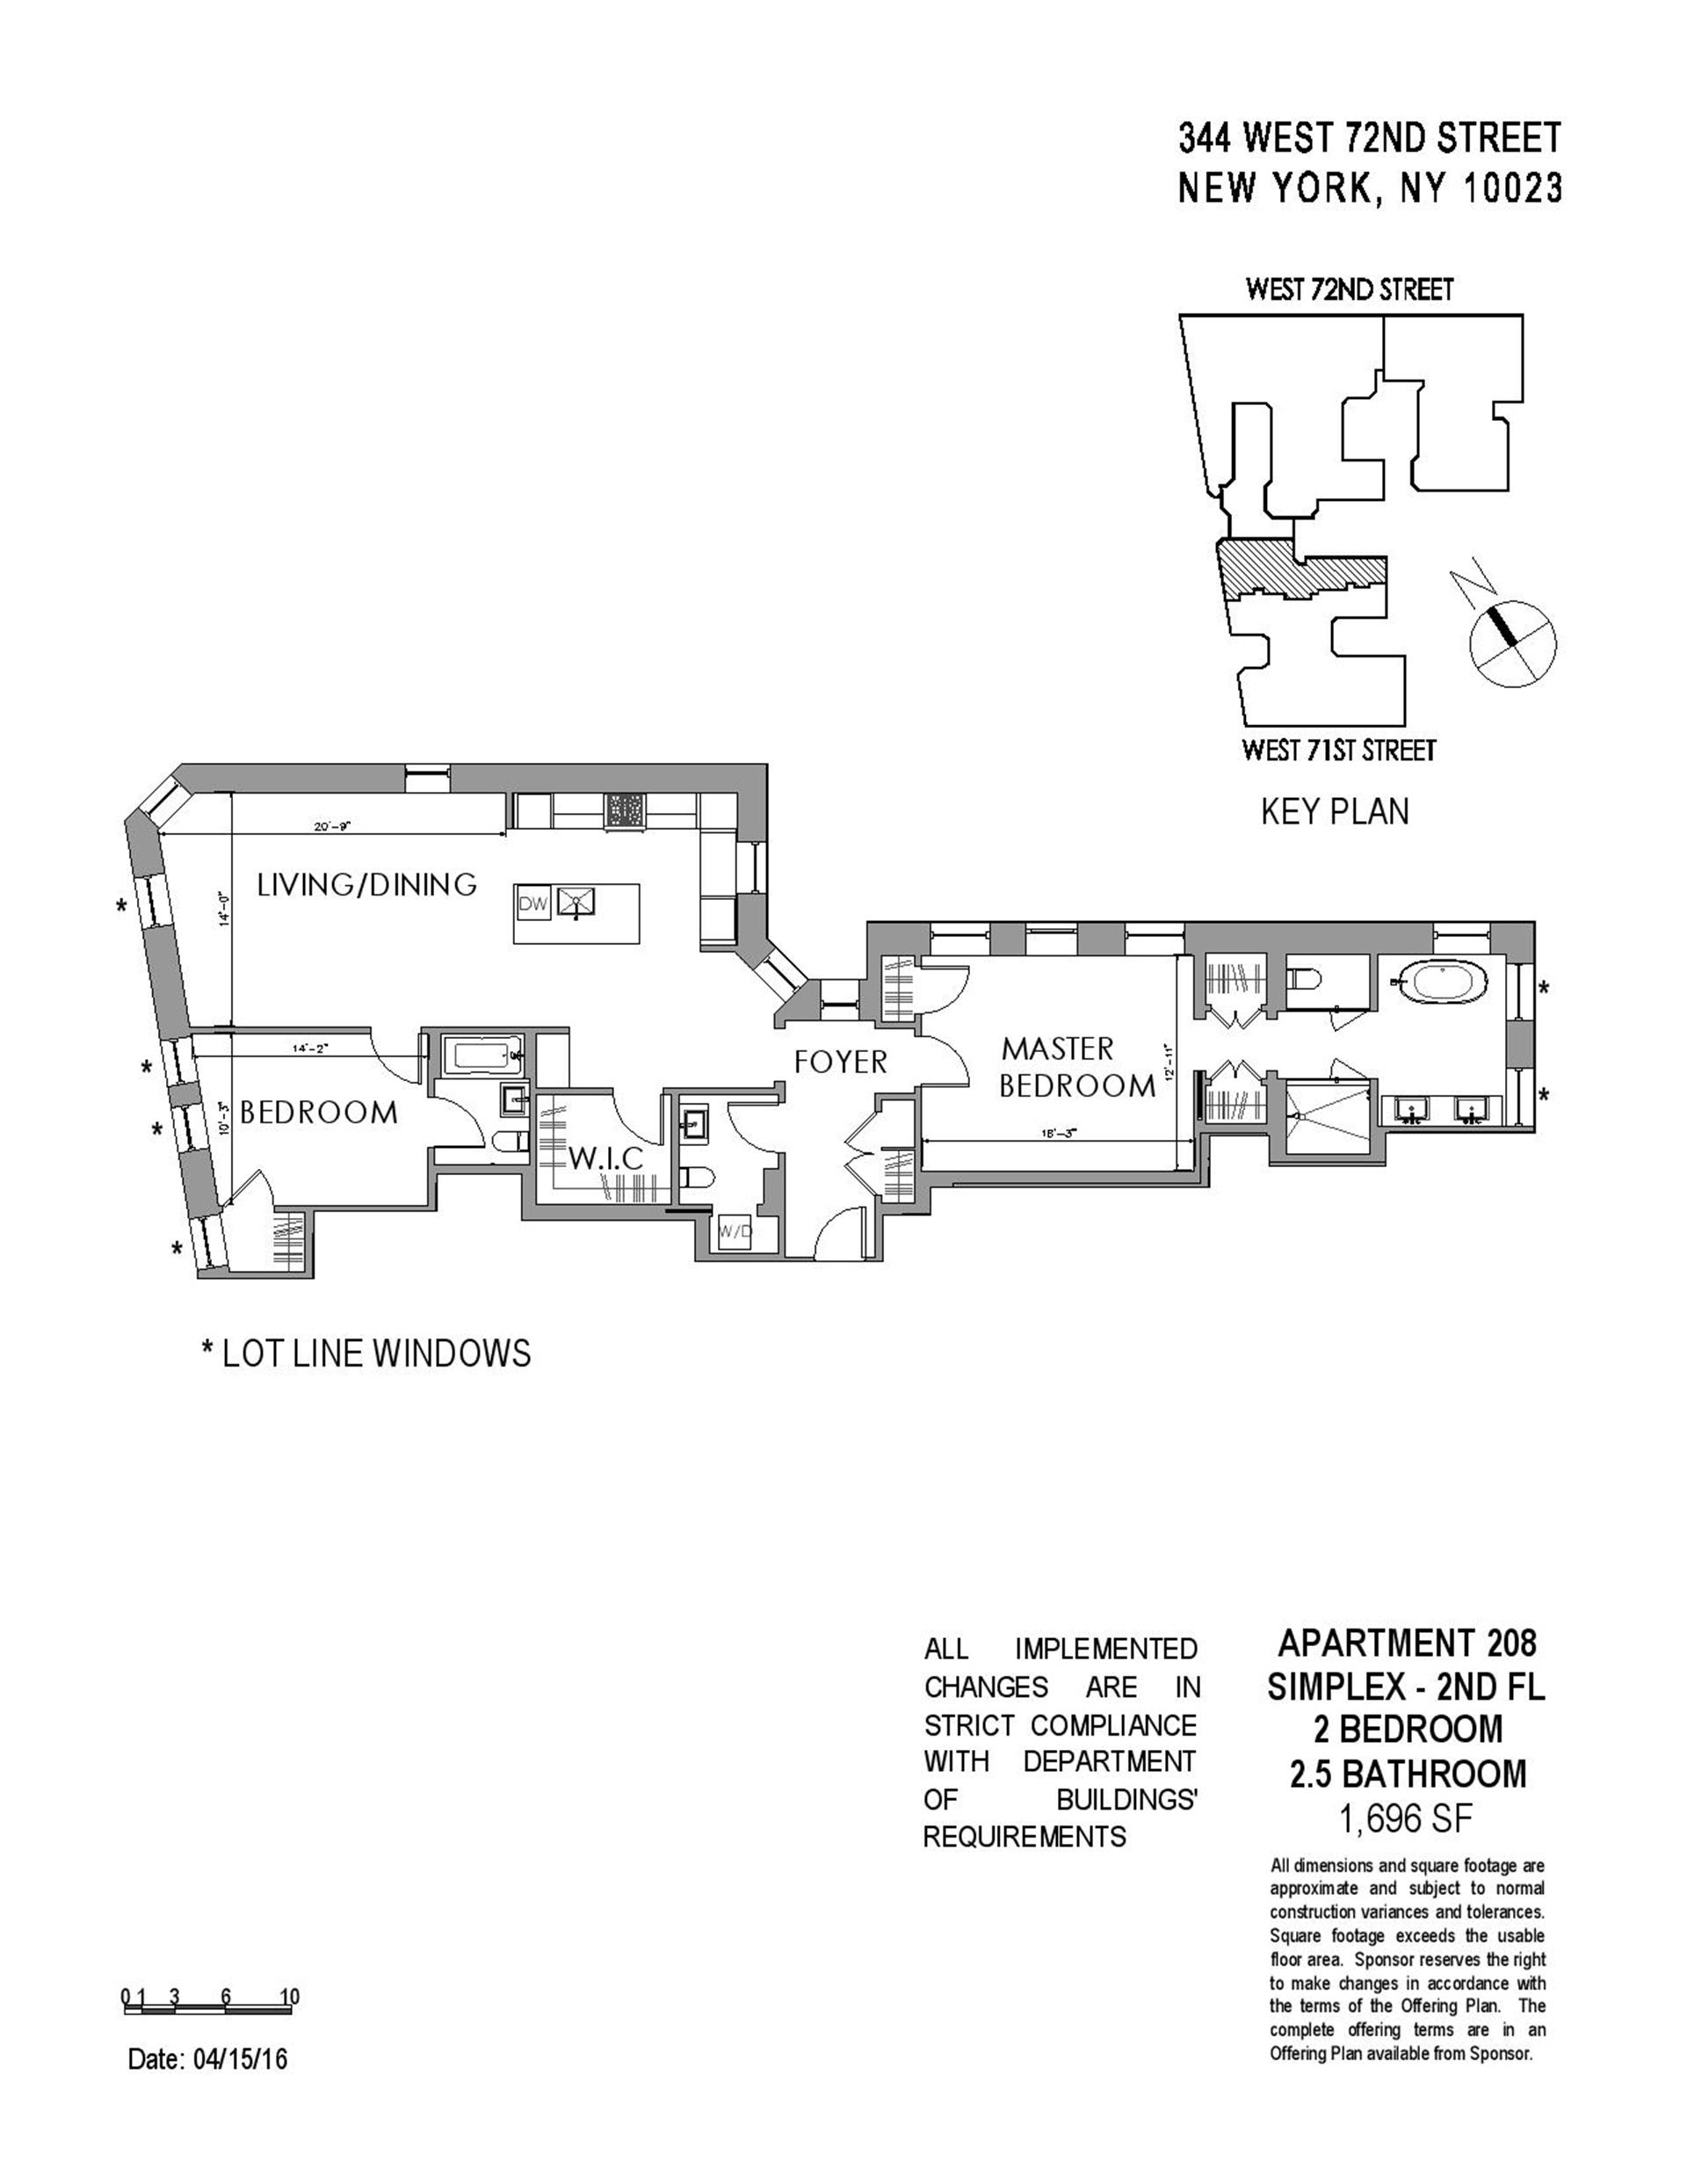 Floor plan of The Chatsworth, 344 West 72nd St, 208 - Upper West Side, New York